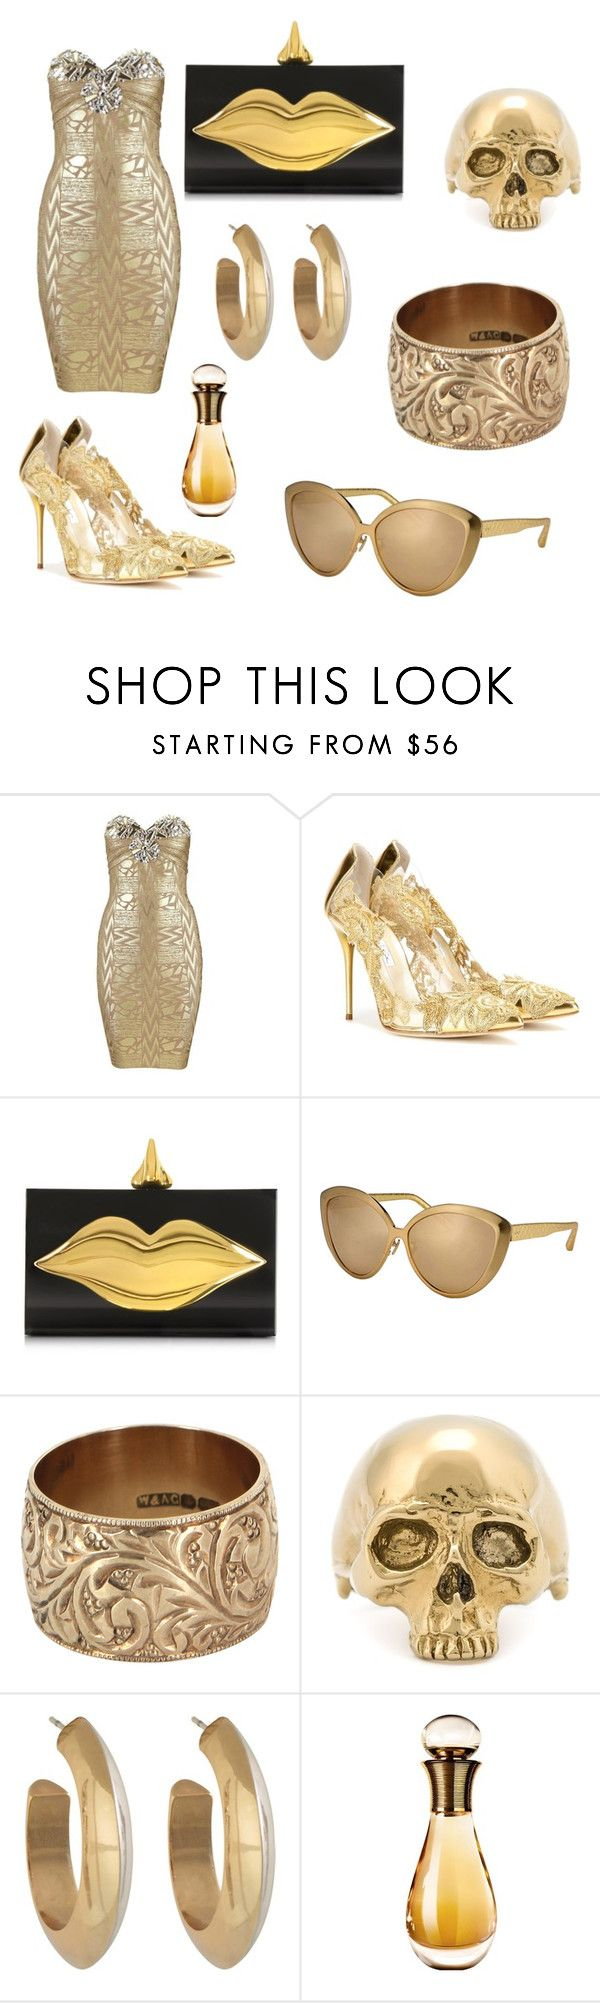 """King Midas's Hooker"" by indiana421 ❤ liked on Polyvore featuring Oscar de la Renta, Charlotte Olympia, Linda Farrow, Vintage, Mastermind, House of Harlow 1960 and Christian Dior"